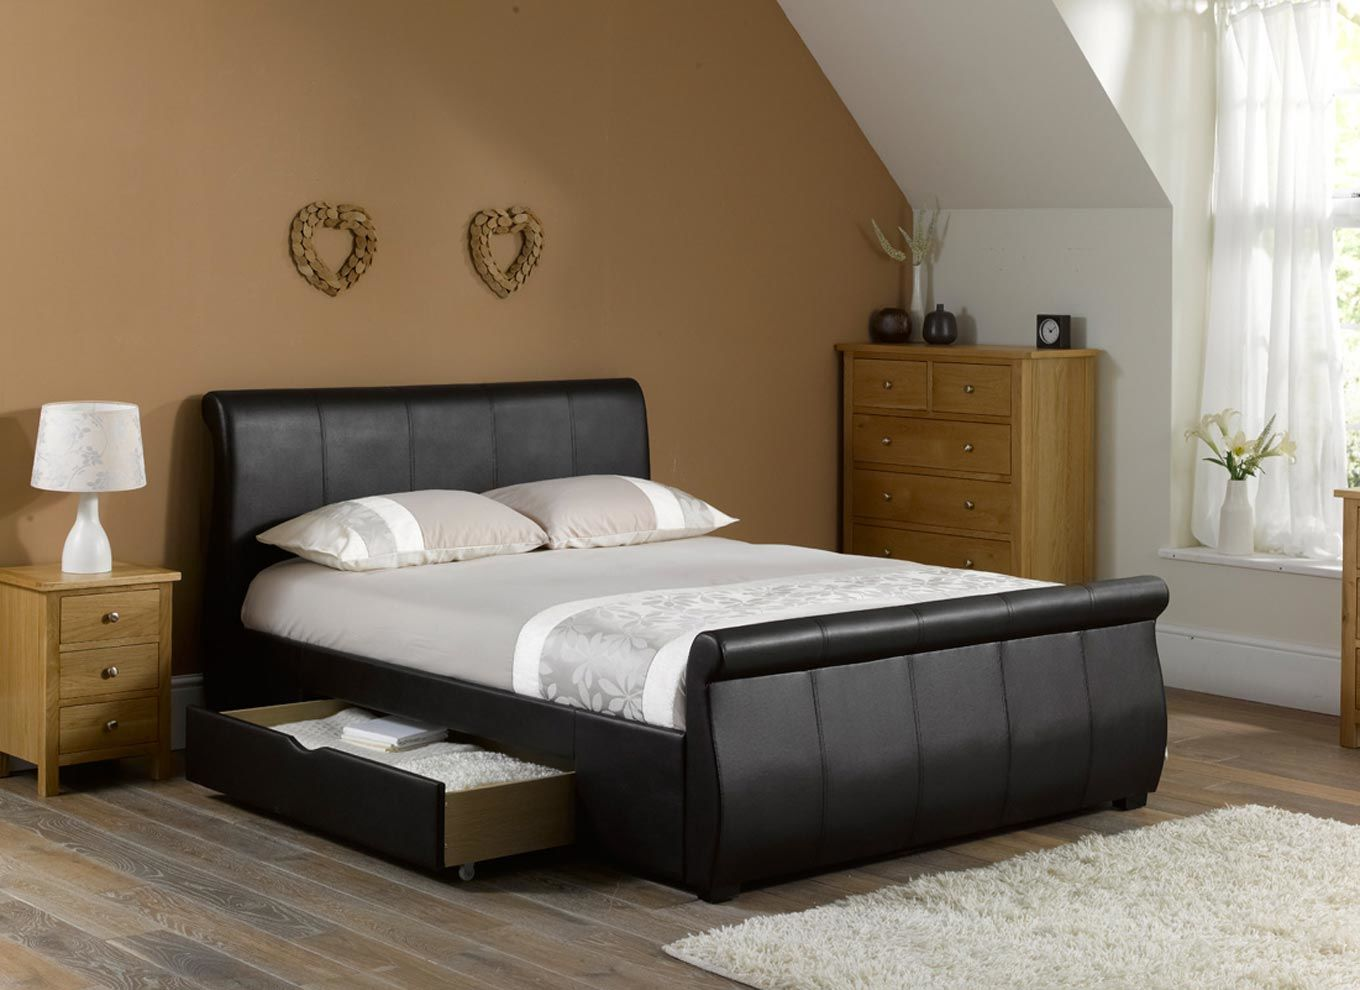 leather beds lucia bed frame | dreams DXWSFSV